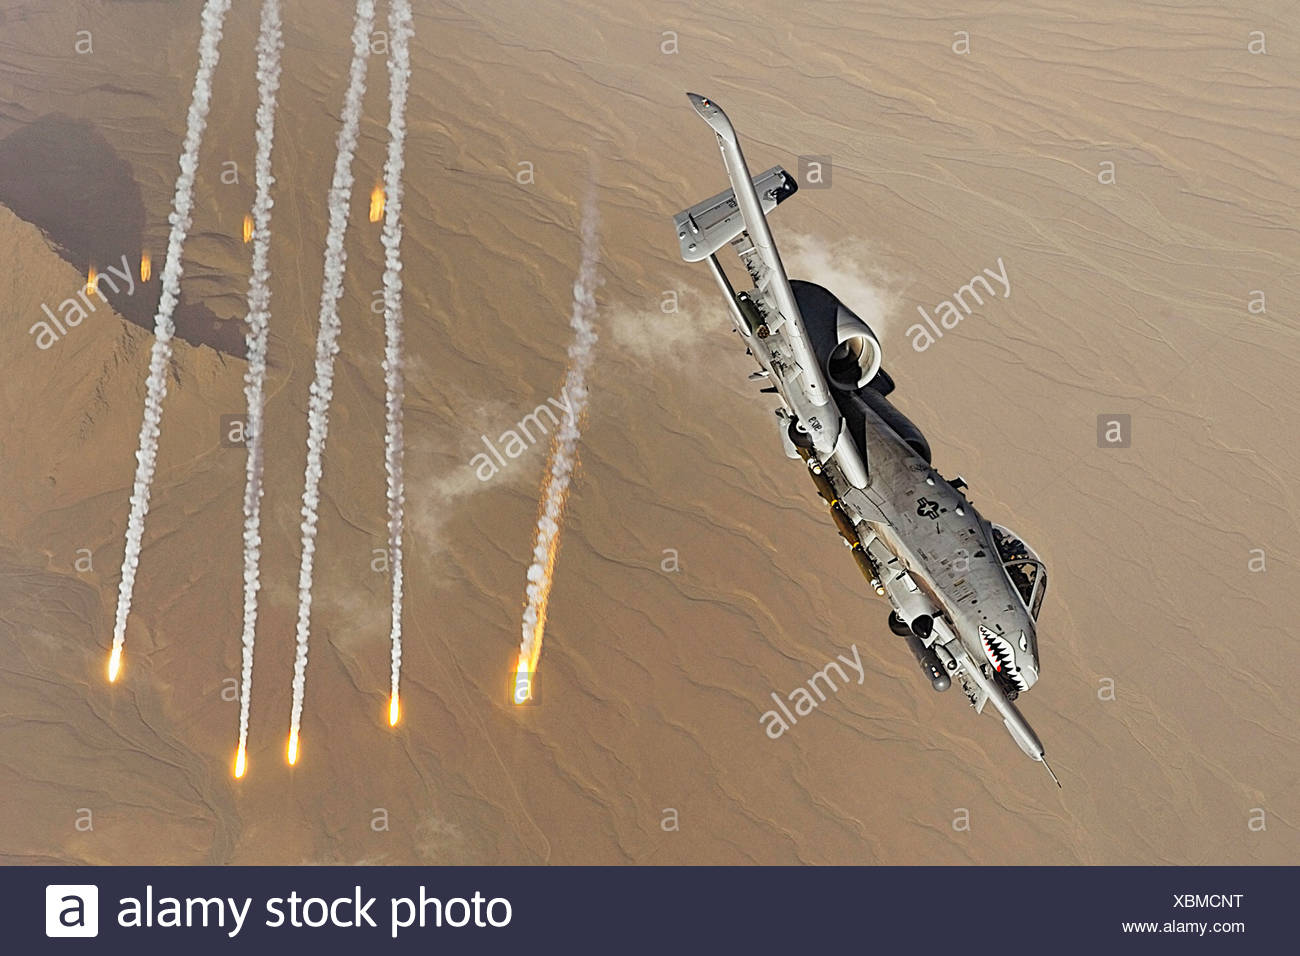 An A-10 Thunderbolt II deploys flairs over Afghanistan. A-10s provide close-air support ground troops in Afghanistan Iraq. - Stock Image